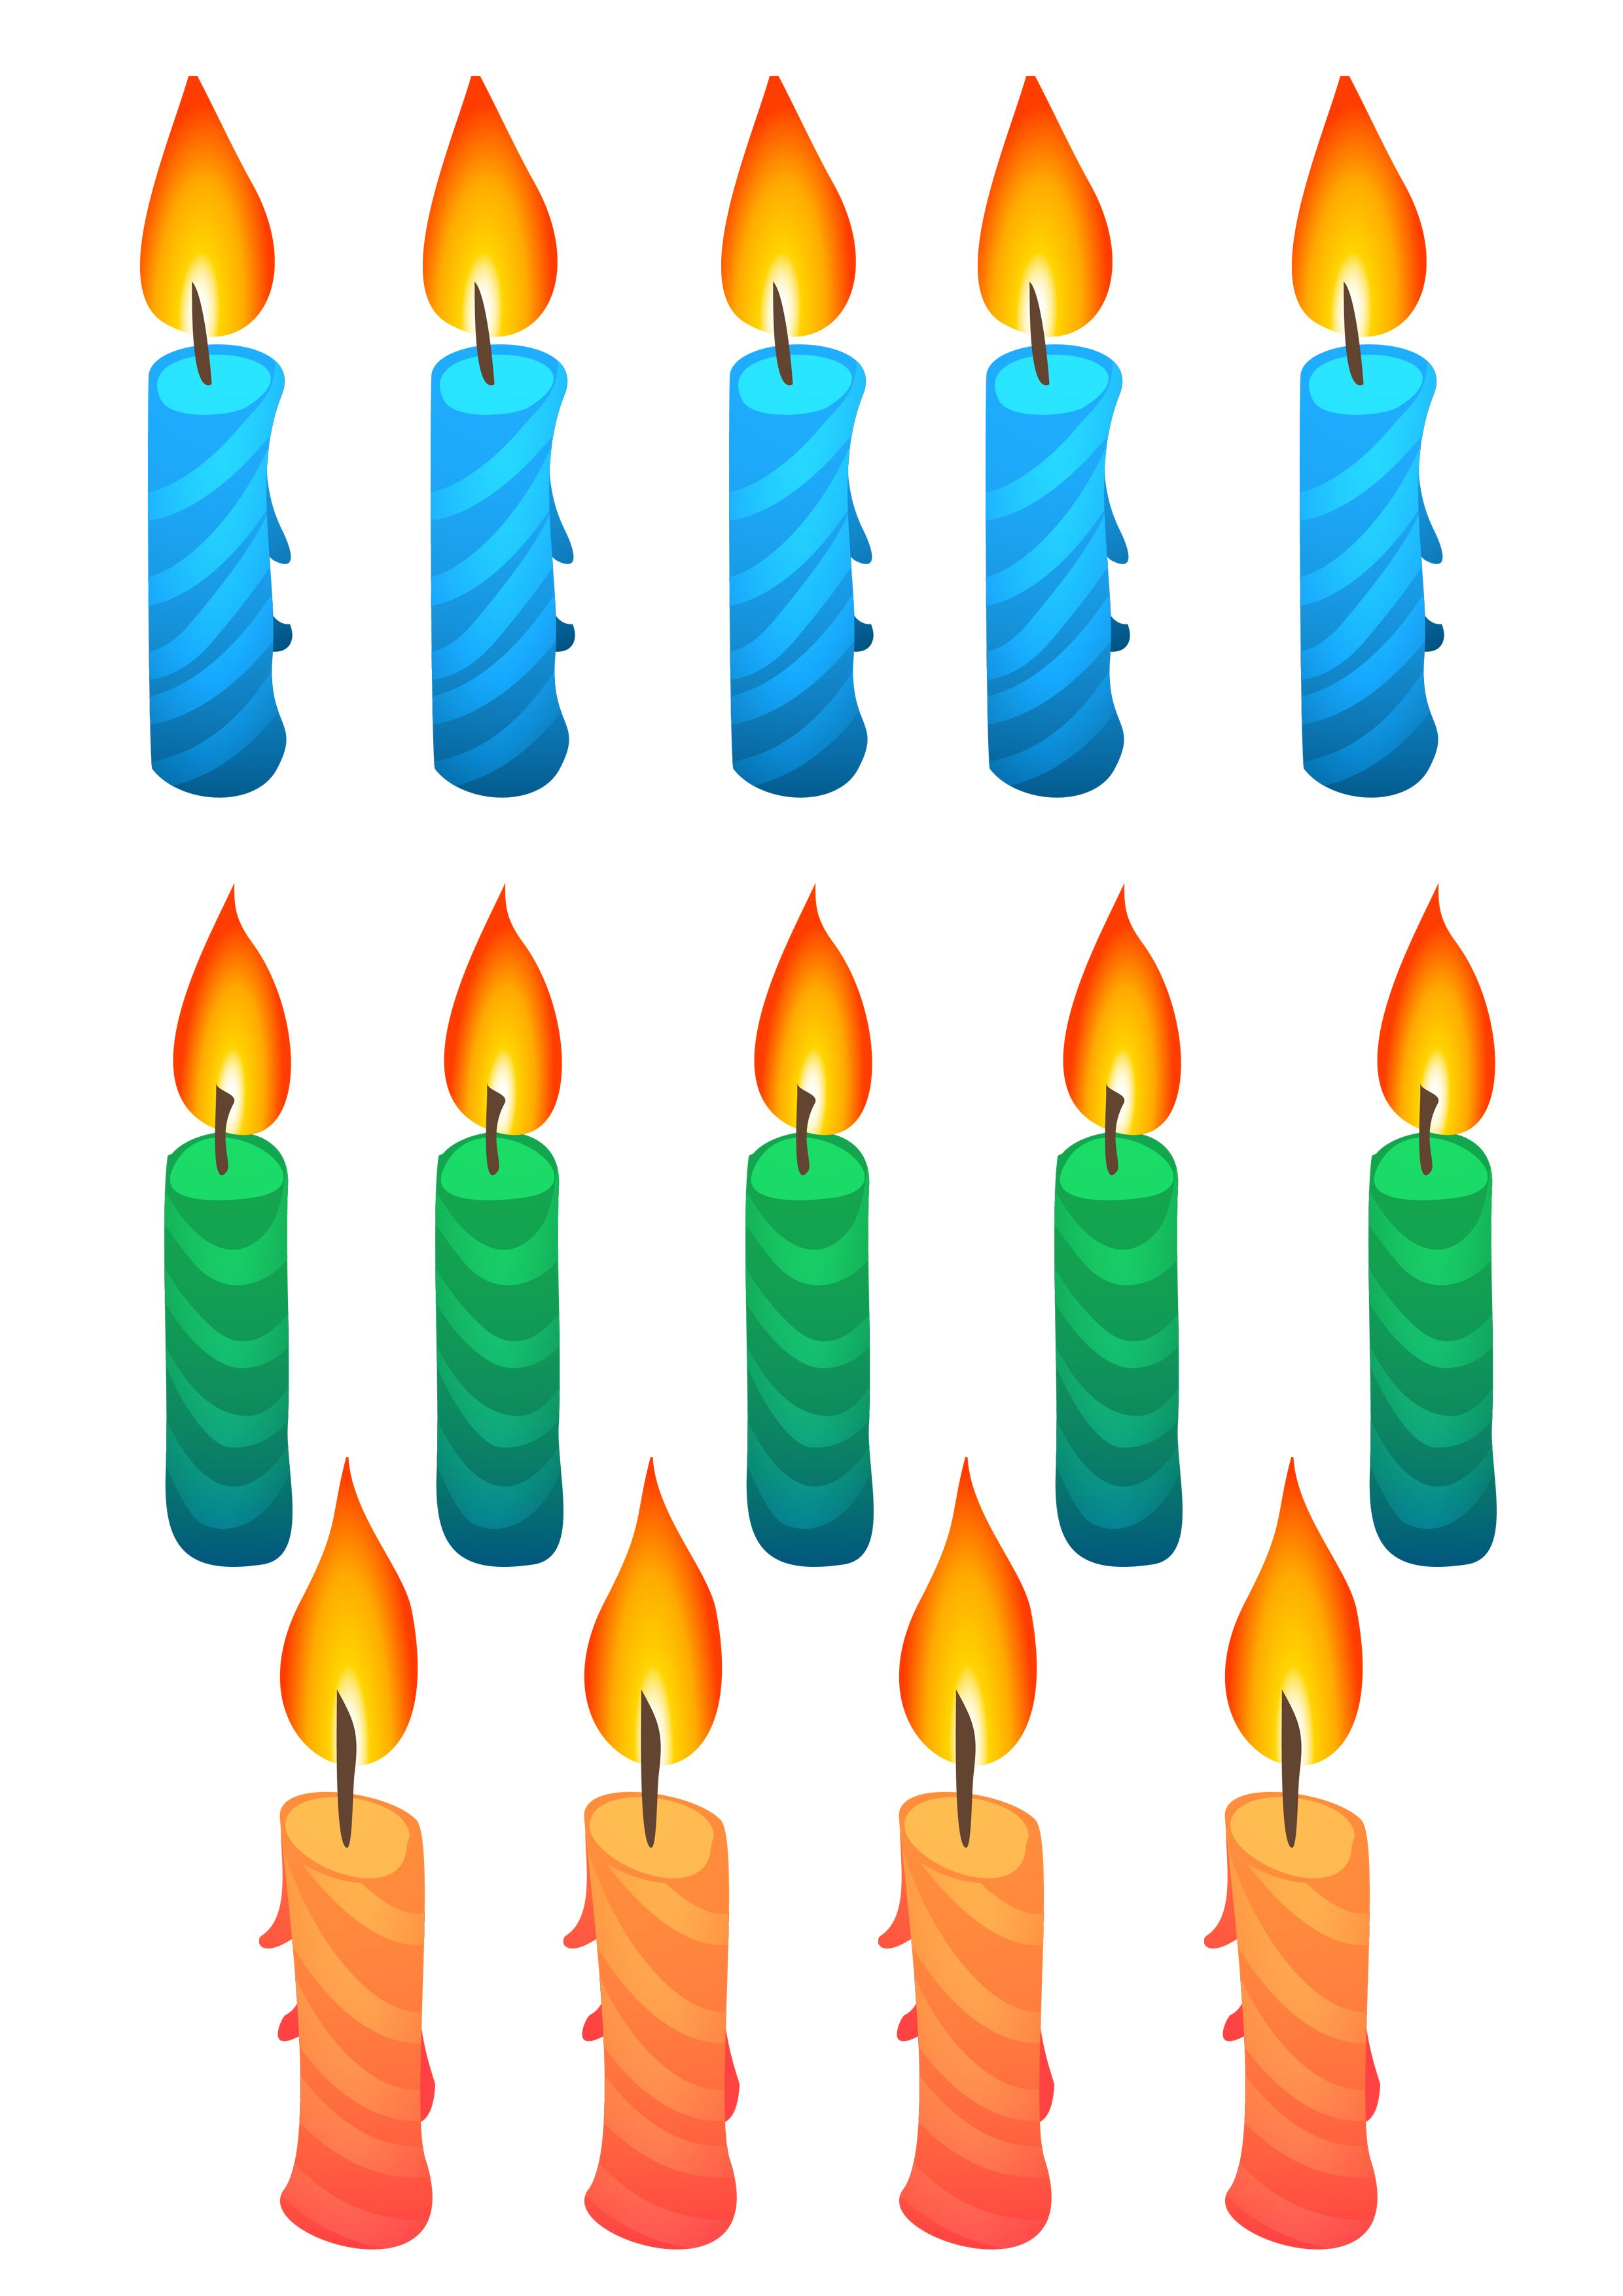 Elegant Birthday Candle Clipart P N G Transparent Free Image Only 01.